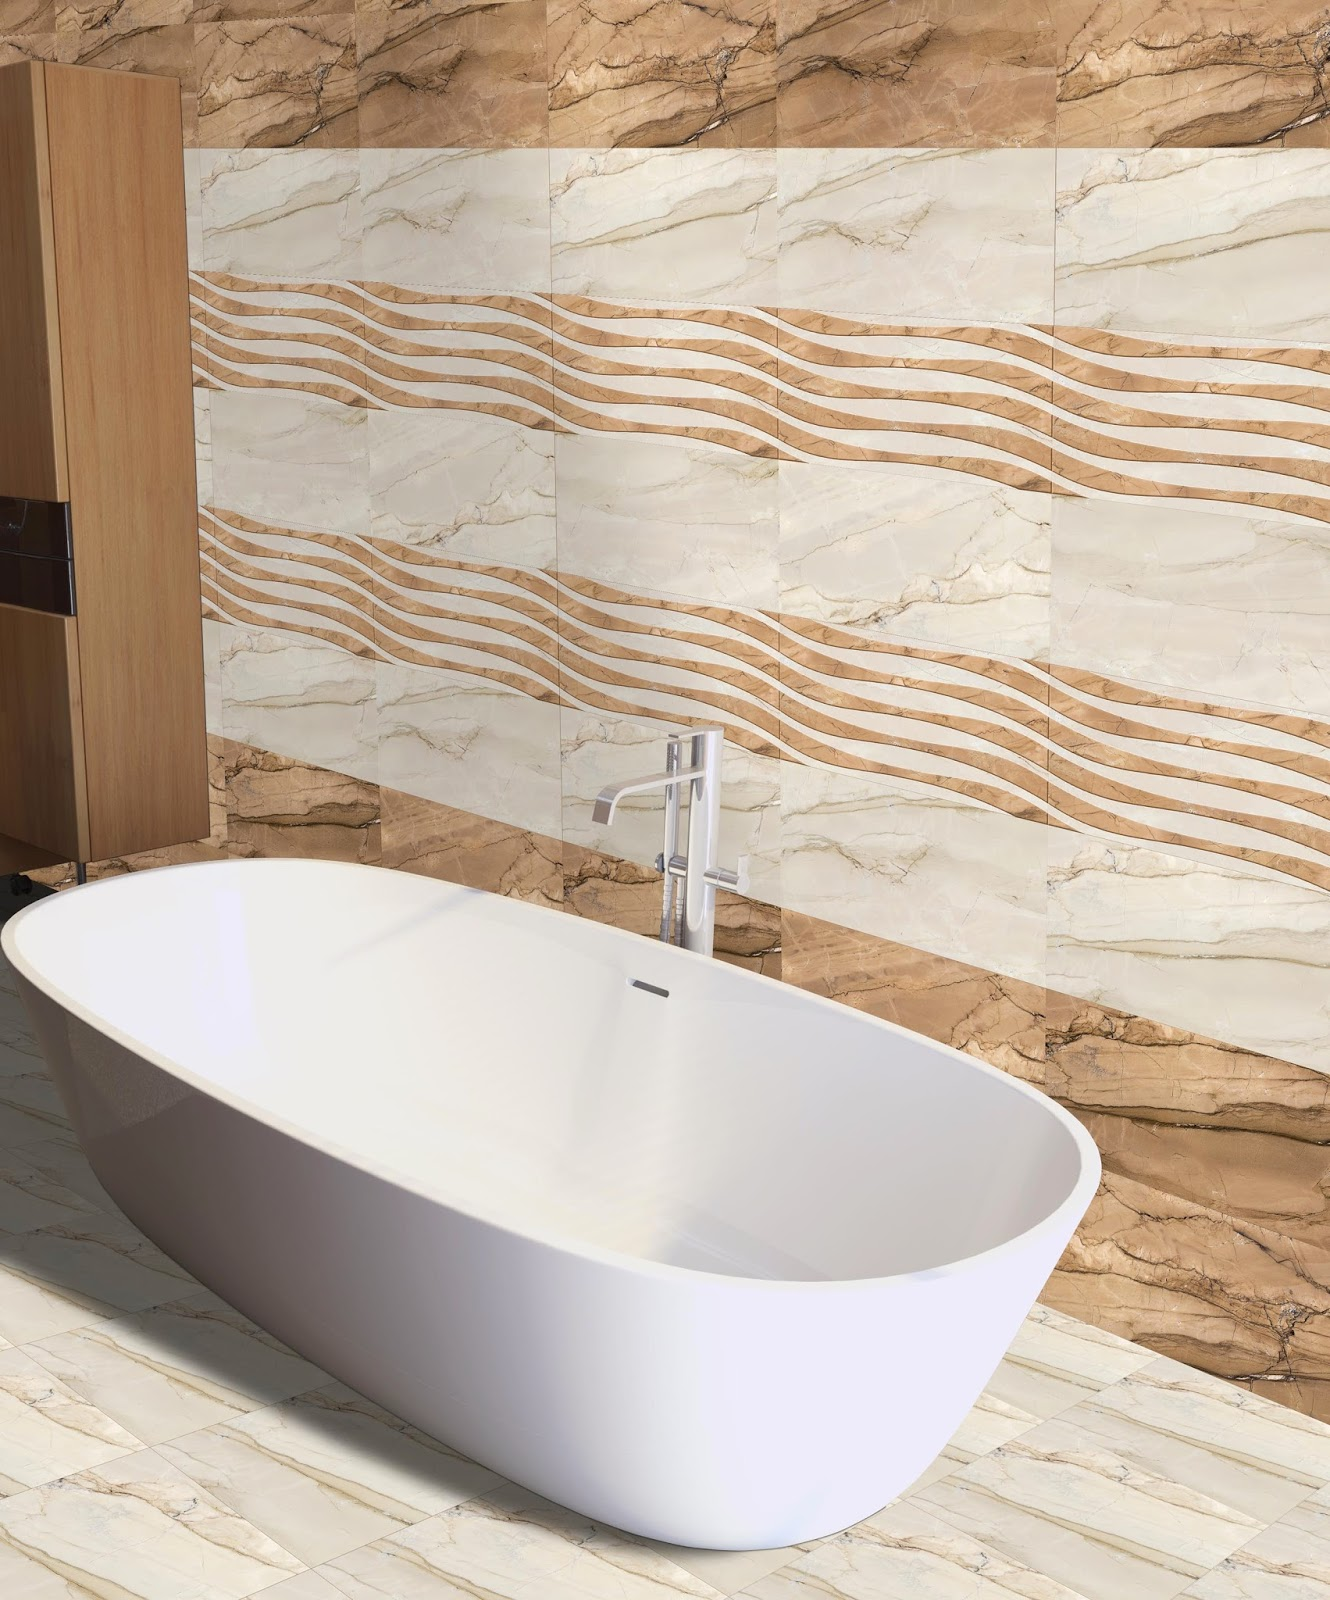 Unique Ceramic Bathroom Tiles India Image Search Results